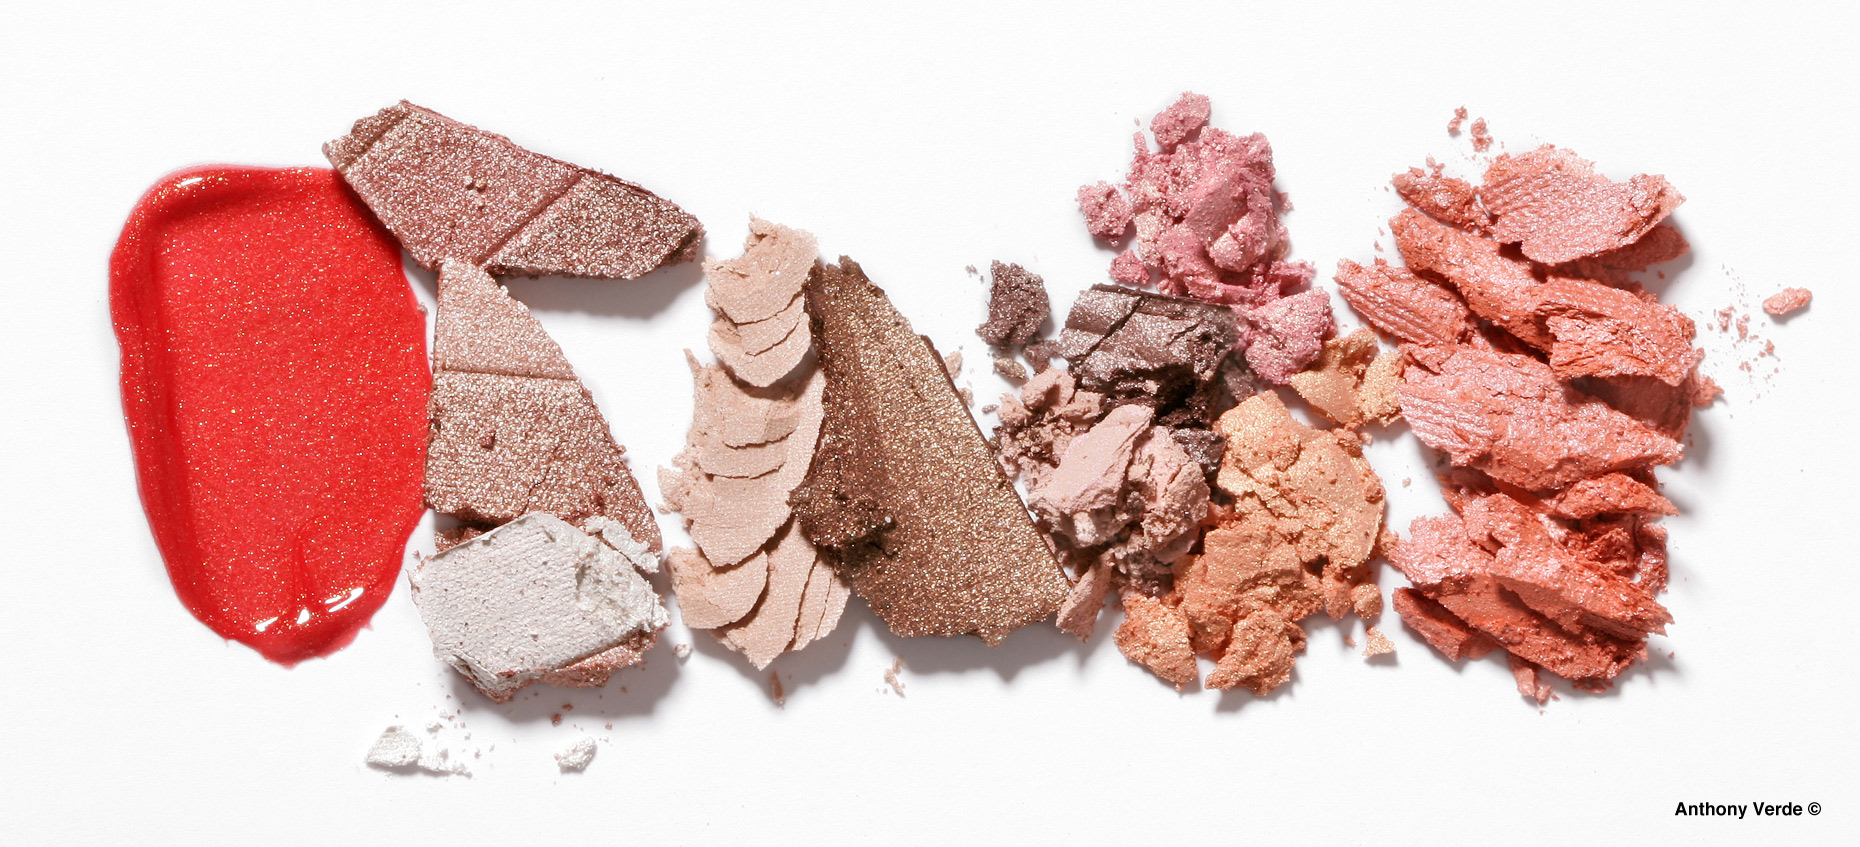 makeup-group-crumbles-still-life-photography